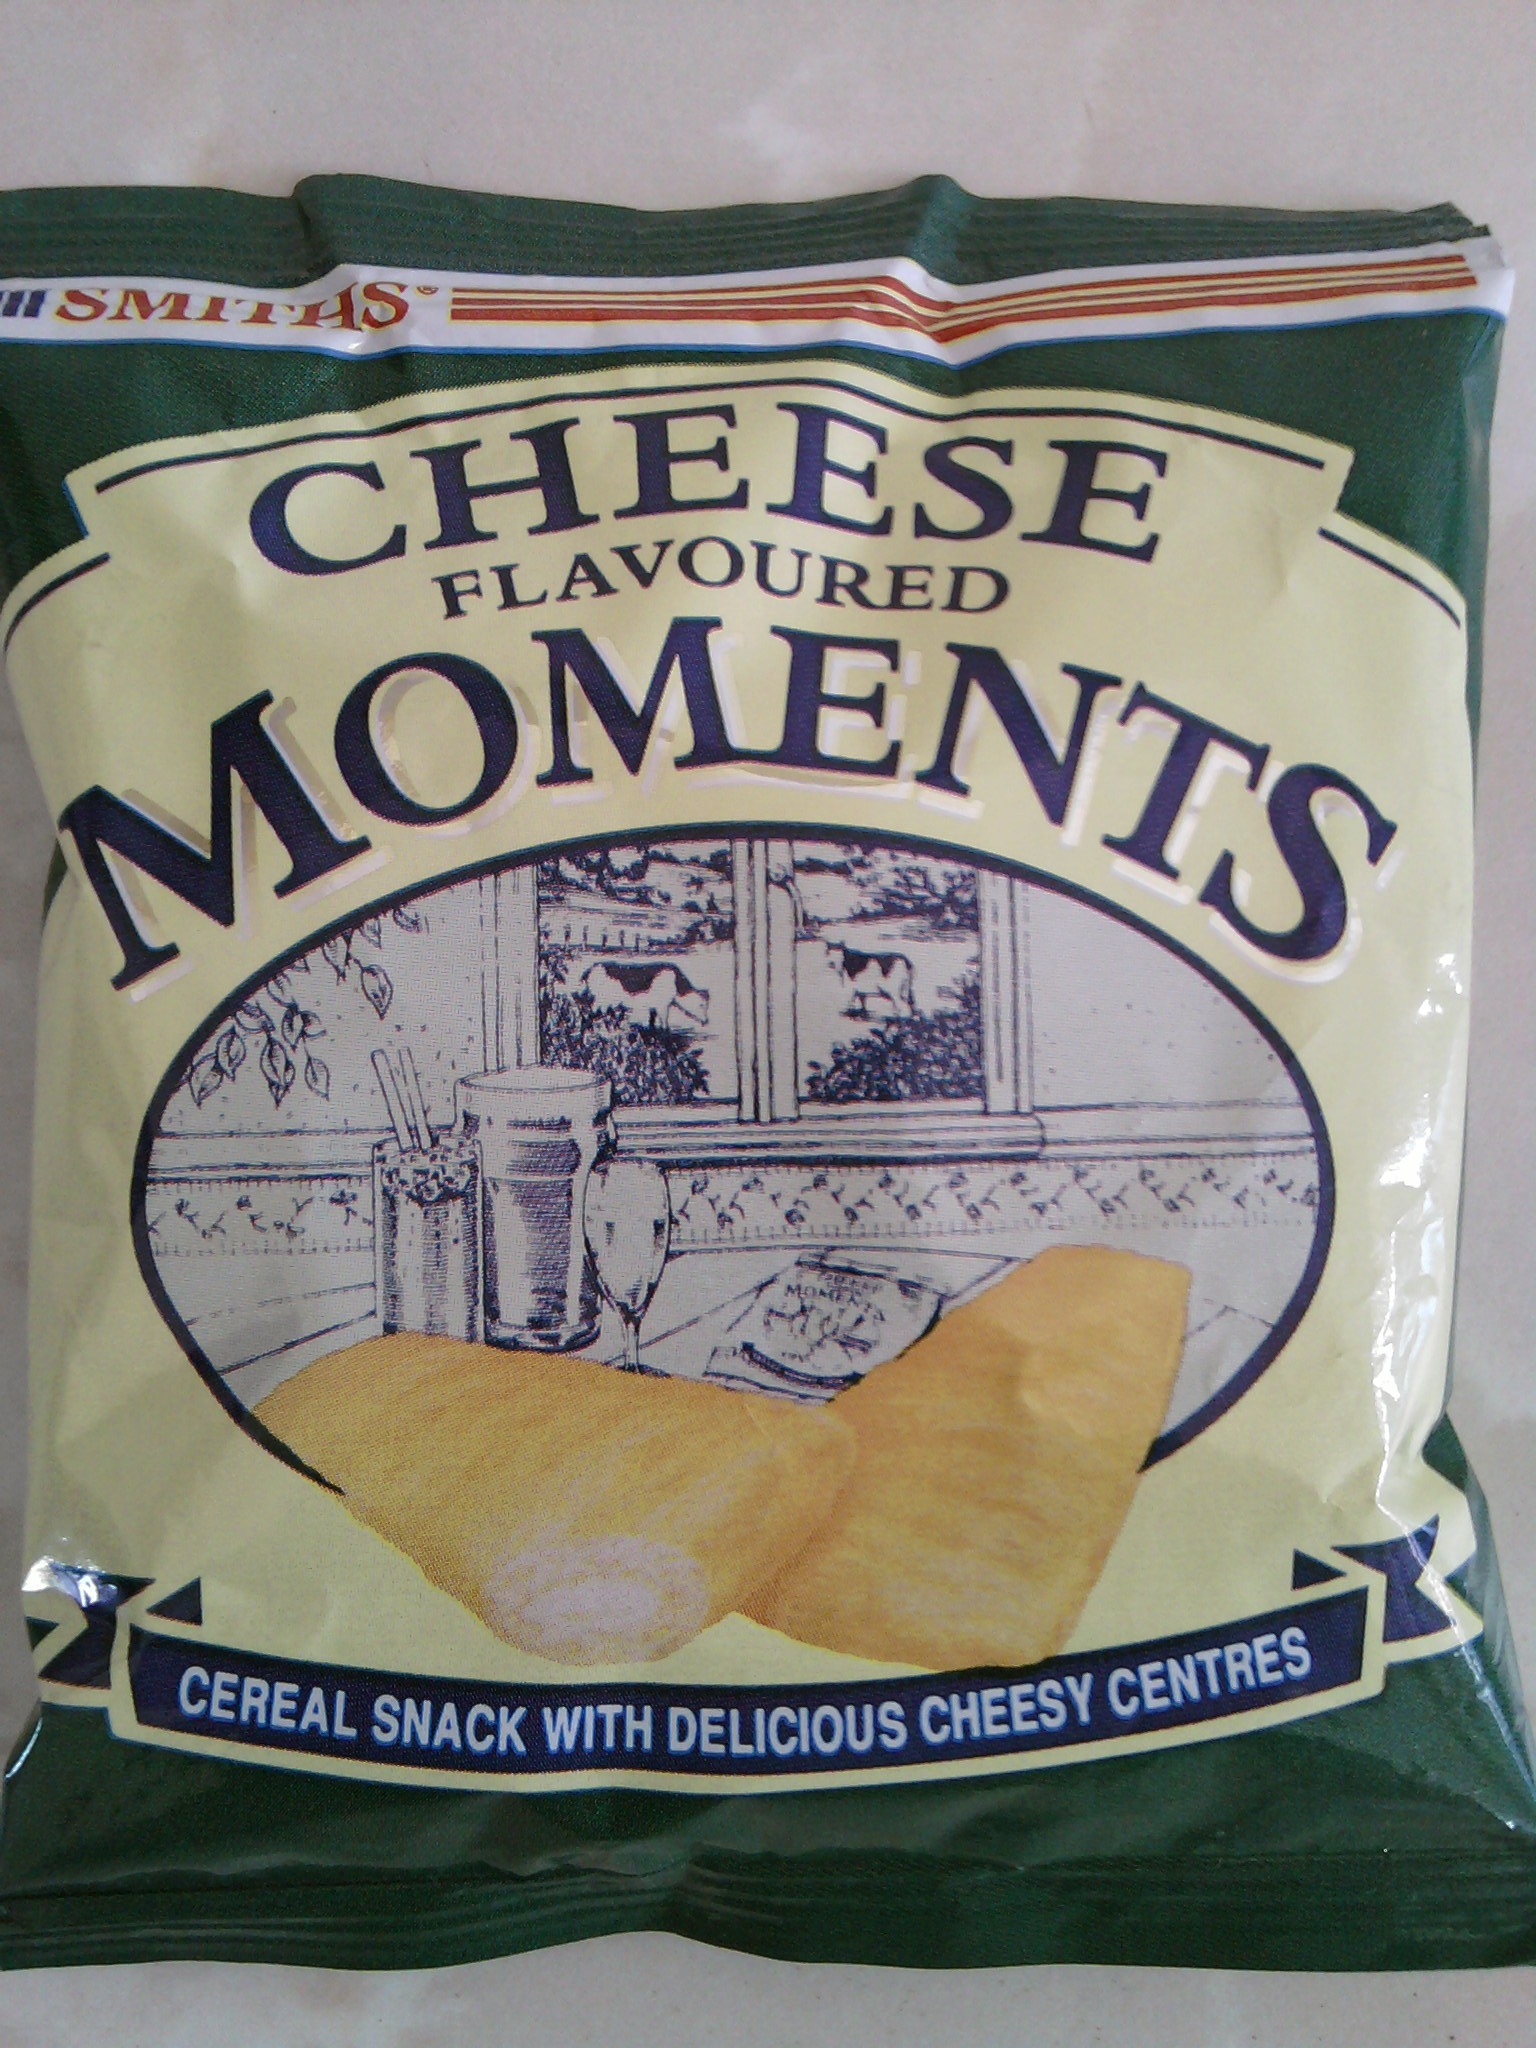 Smiths Cheese Flavoured Moments front of bag